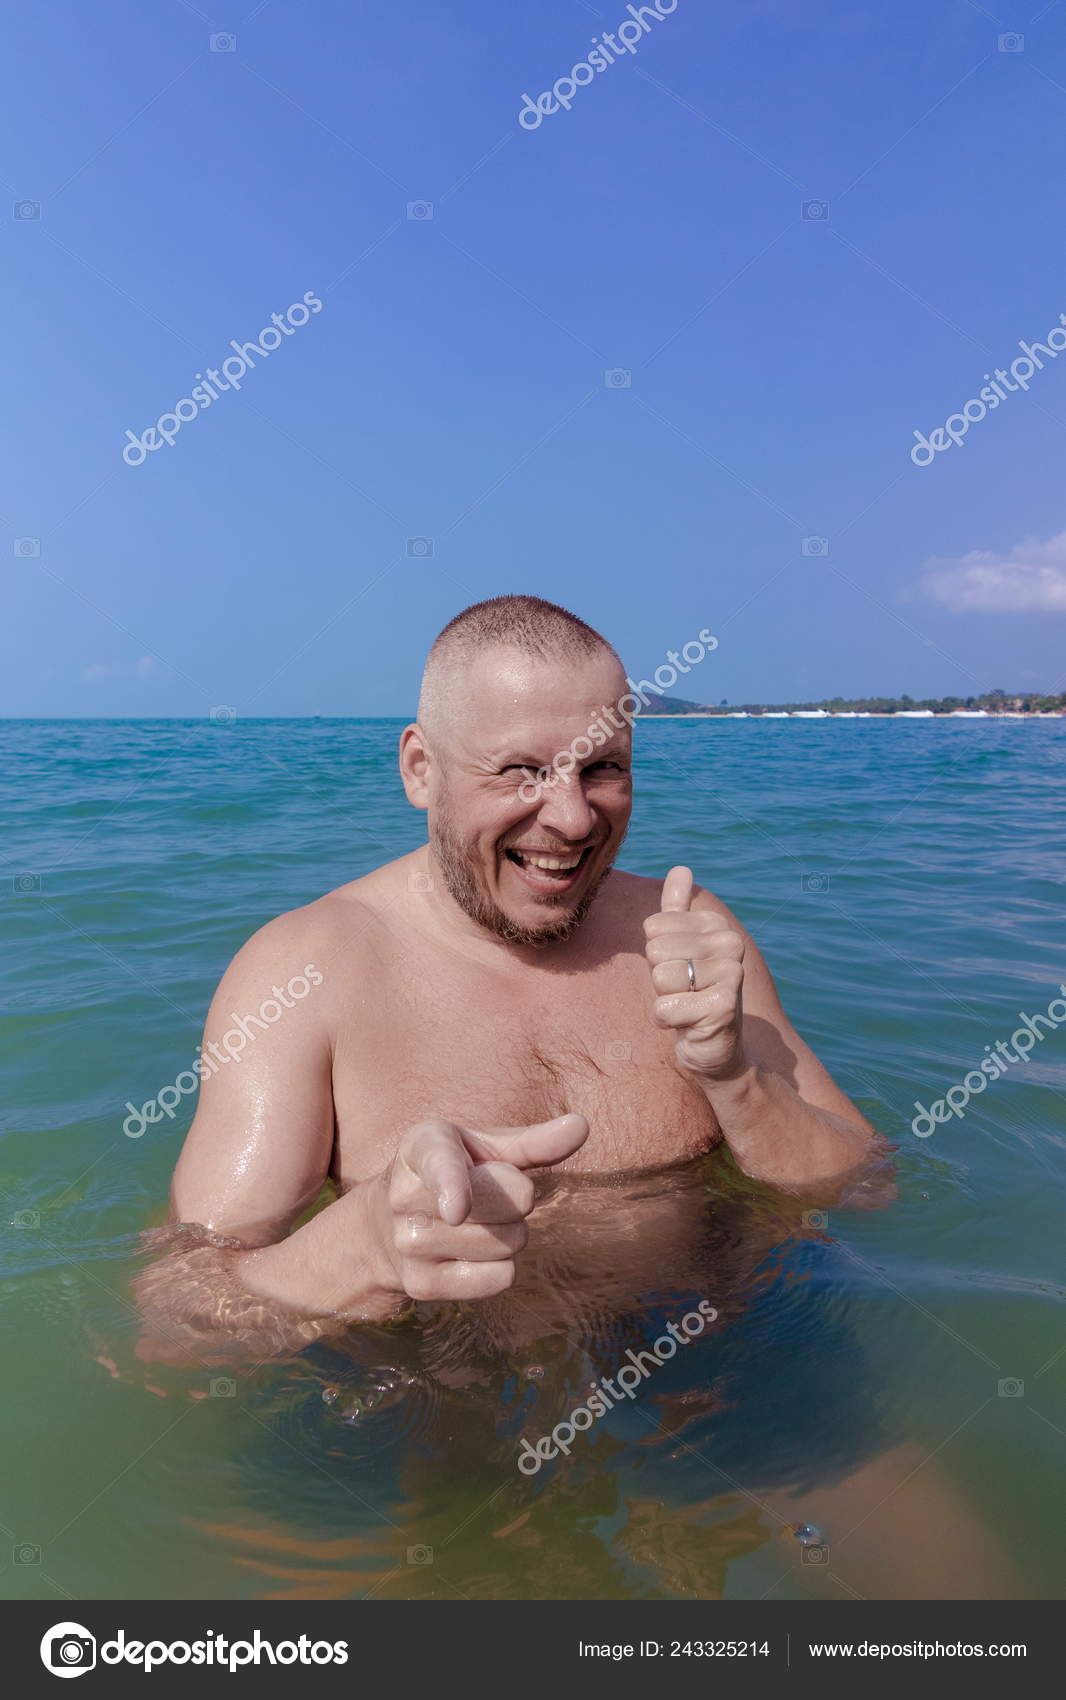 picture of nude man at beach